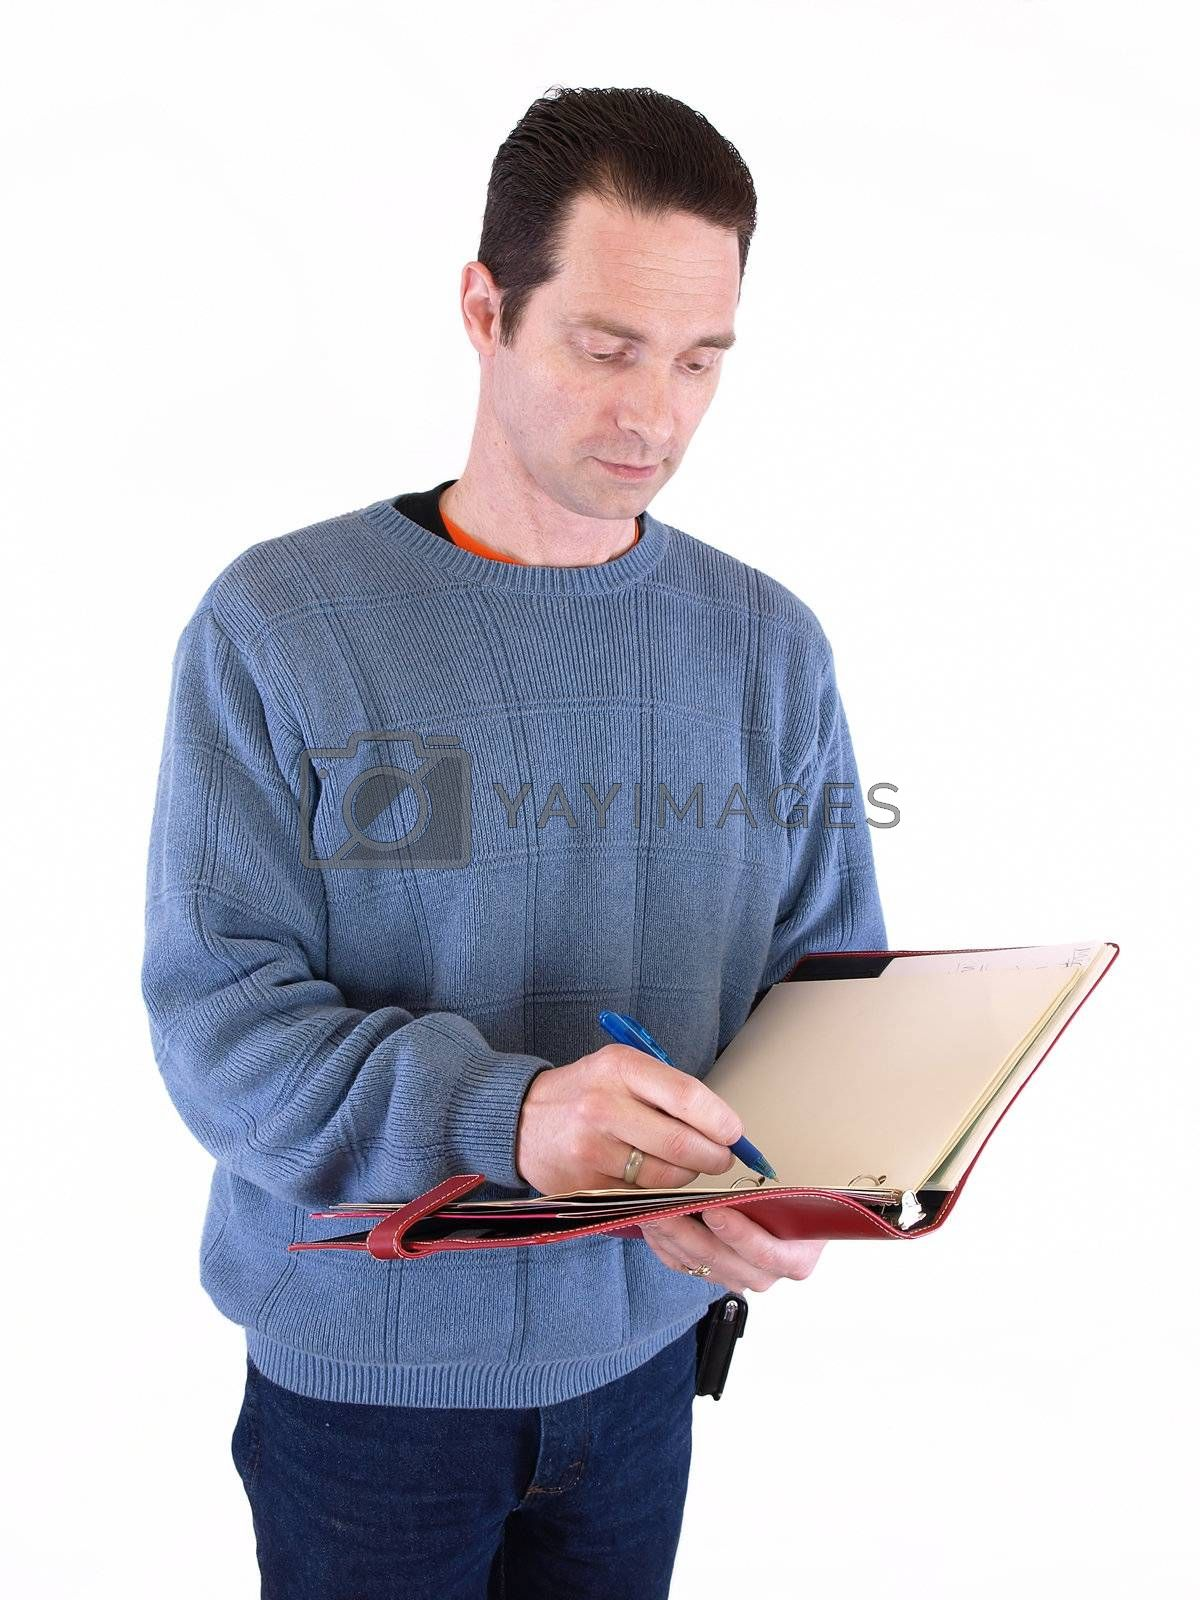 An adult male taking notes in a binder, isolated against a white background.